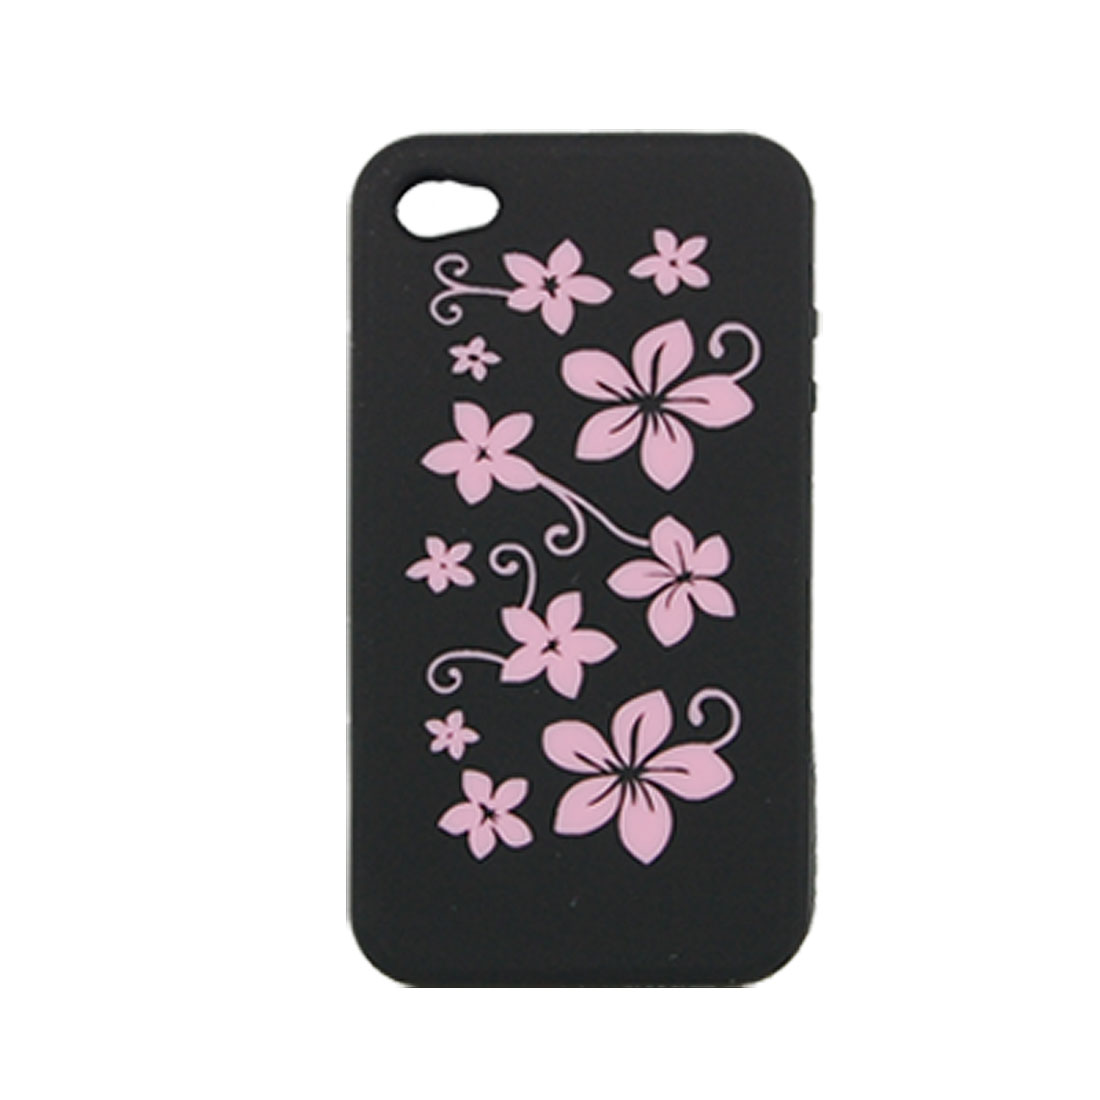 Black Silicone Flower Pattern Case Cover for iPhone 4 4G